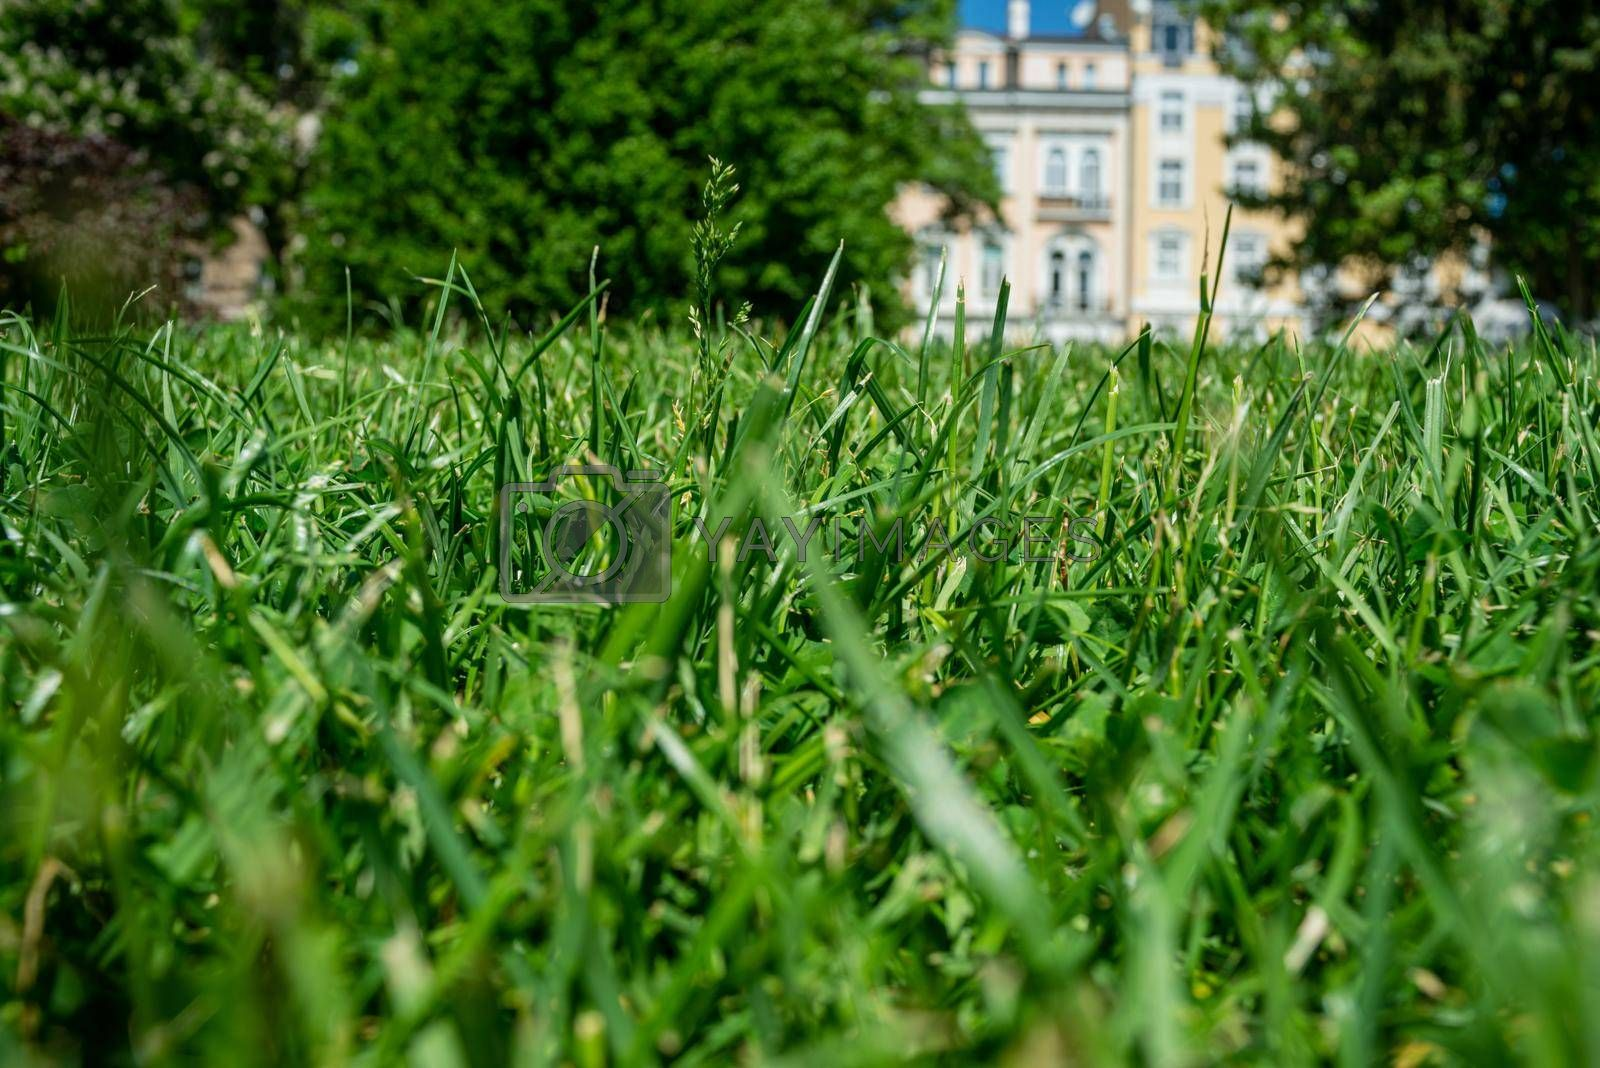 Royalty free image of Grass Green Park Urban Europe Bulgaria Sunny Day by vilevi